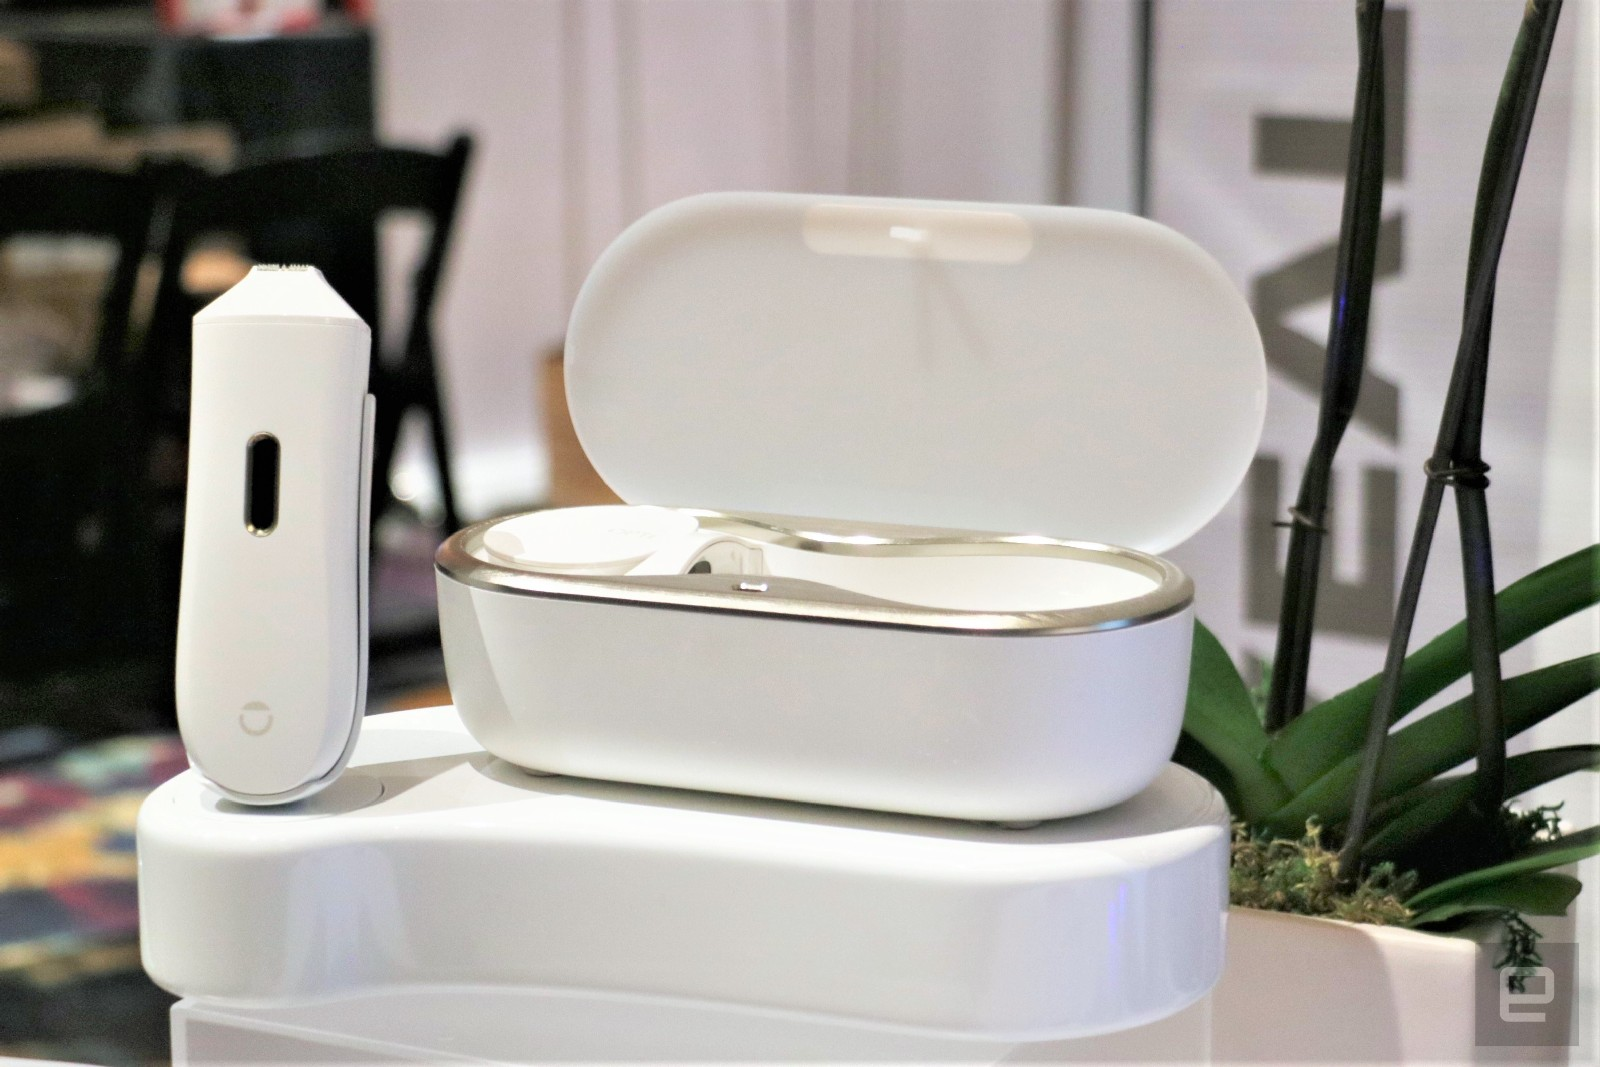 Opte Precision Skincare hands-on at CES 2020